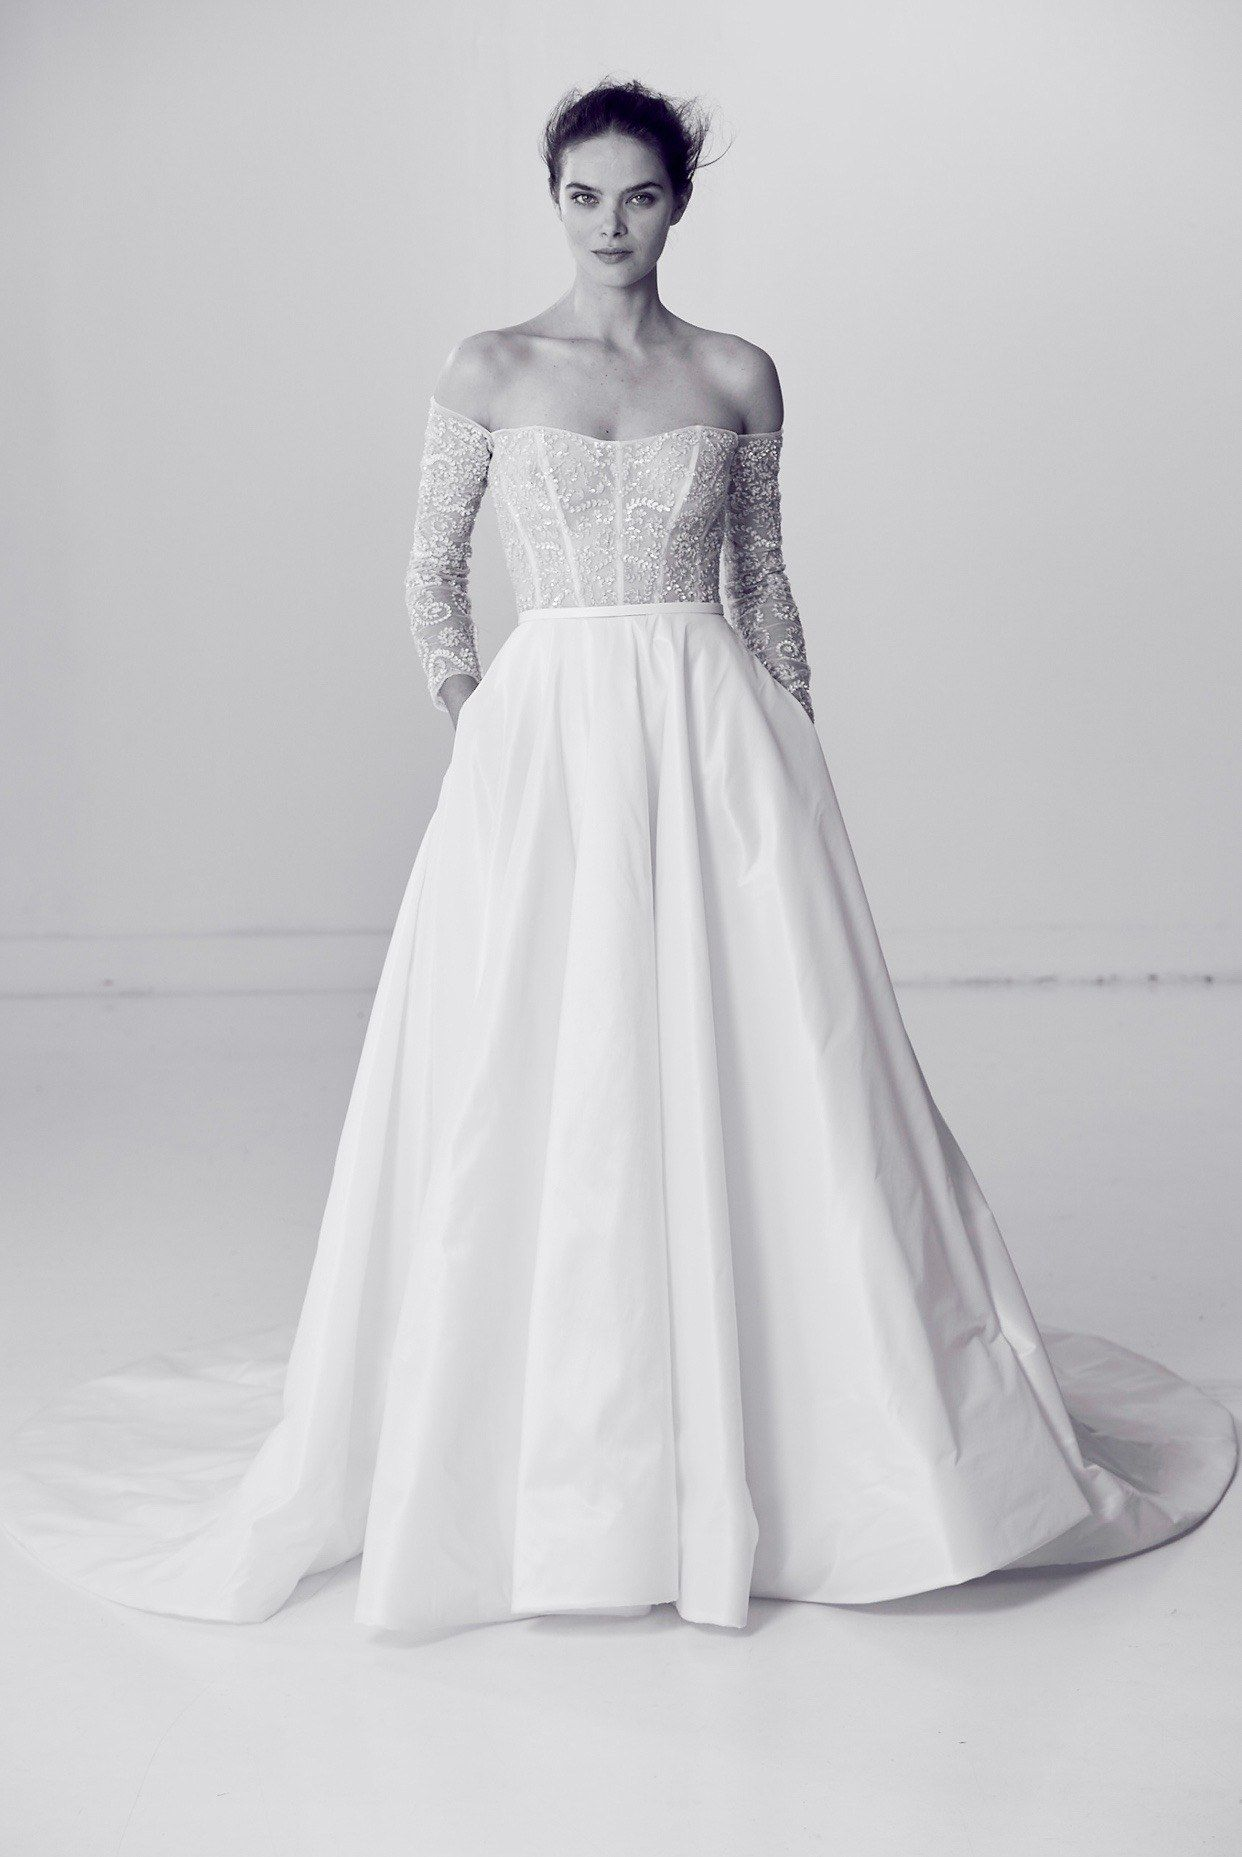 """Alyne by Rita Vinieris's """"Perfect"""" dress from the spring 2018 collection is a taffeta ball gown in a full floor-length with a portrait collar sheer beaded bodice and long sleeves."""